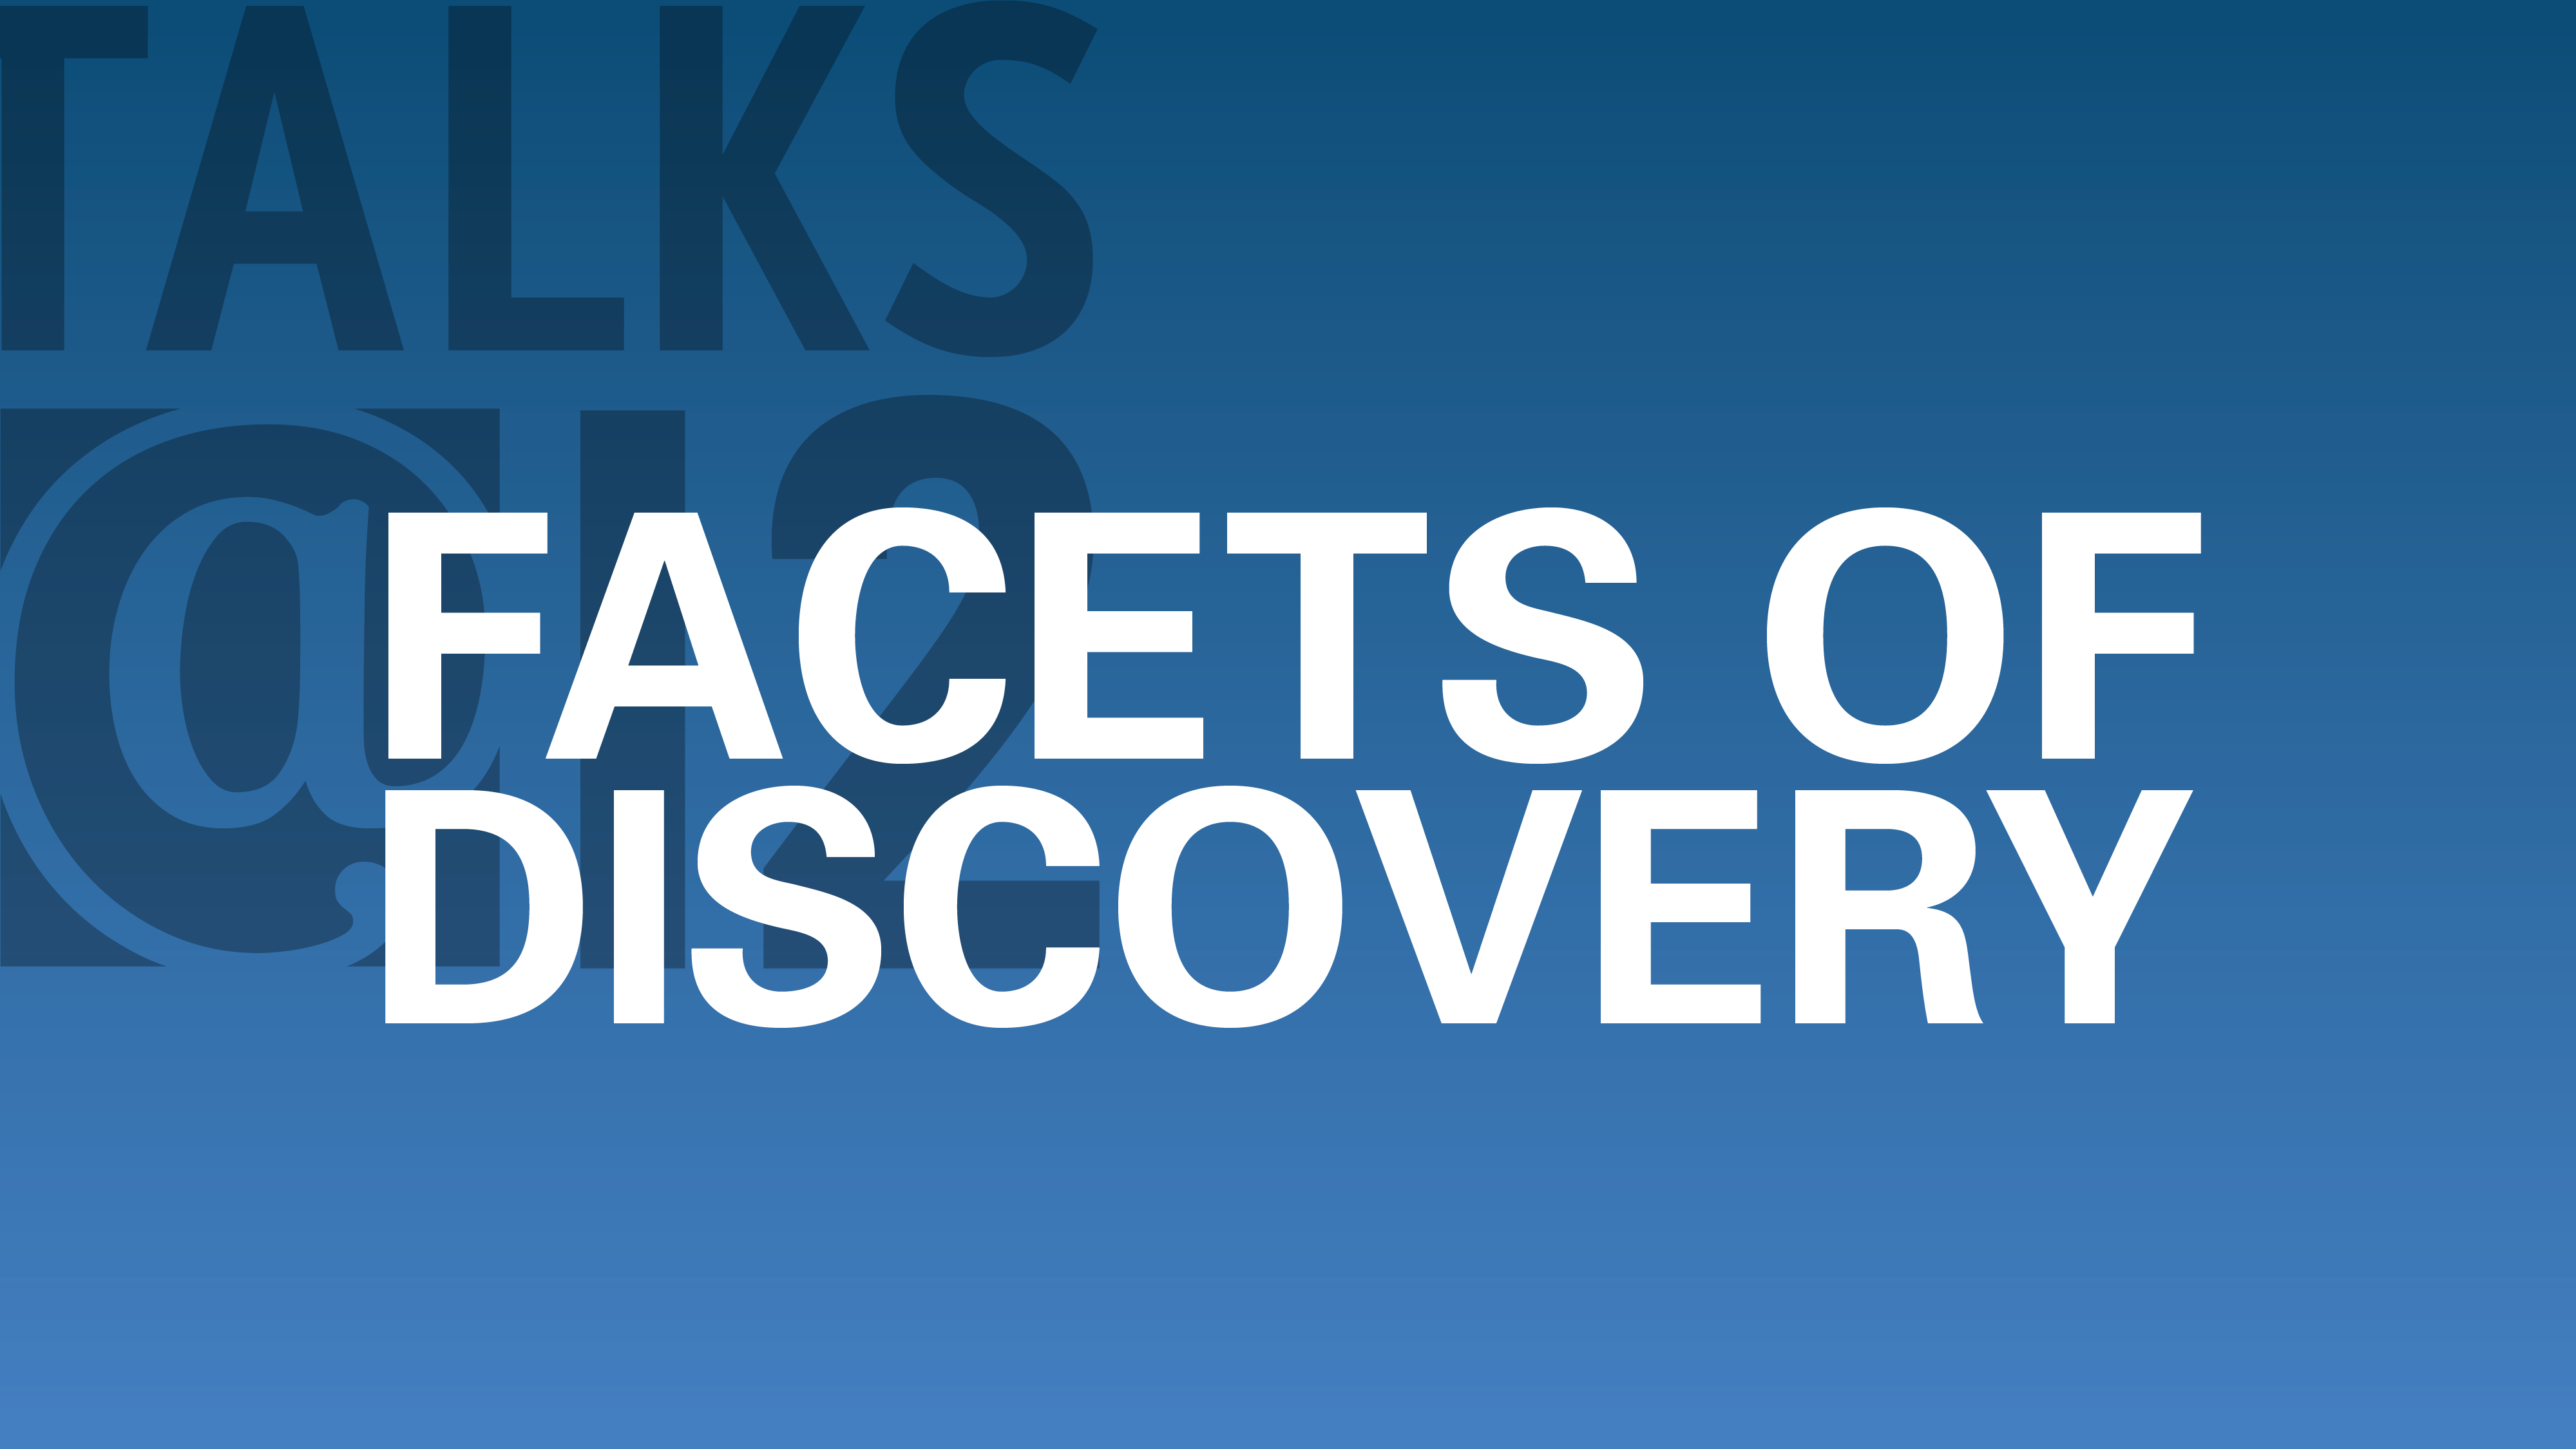 Facets of Discovery